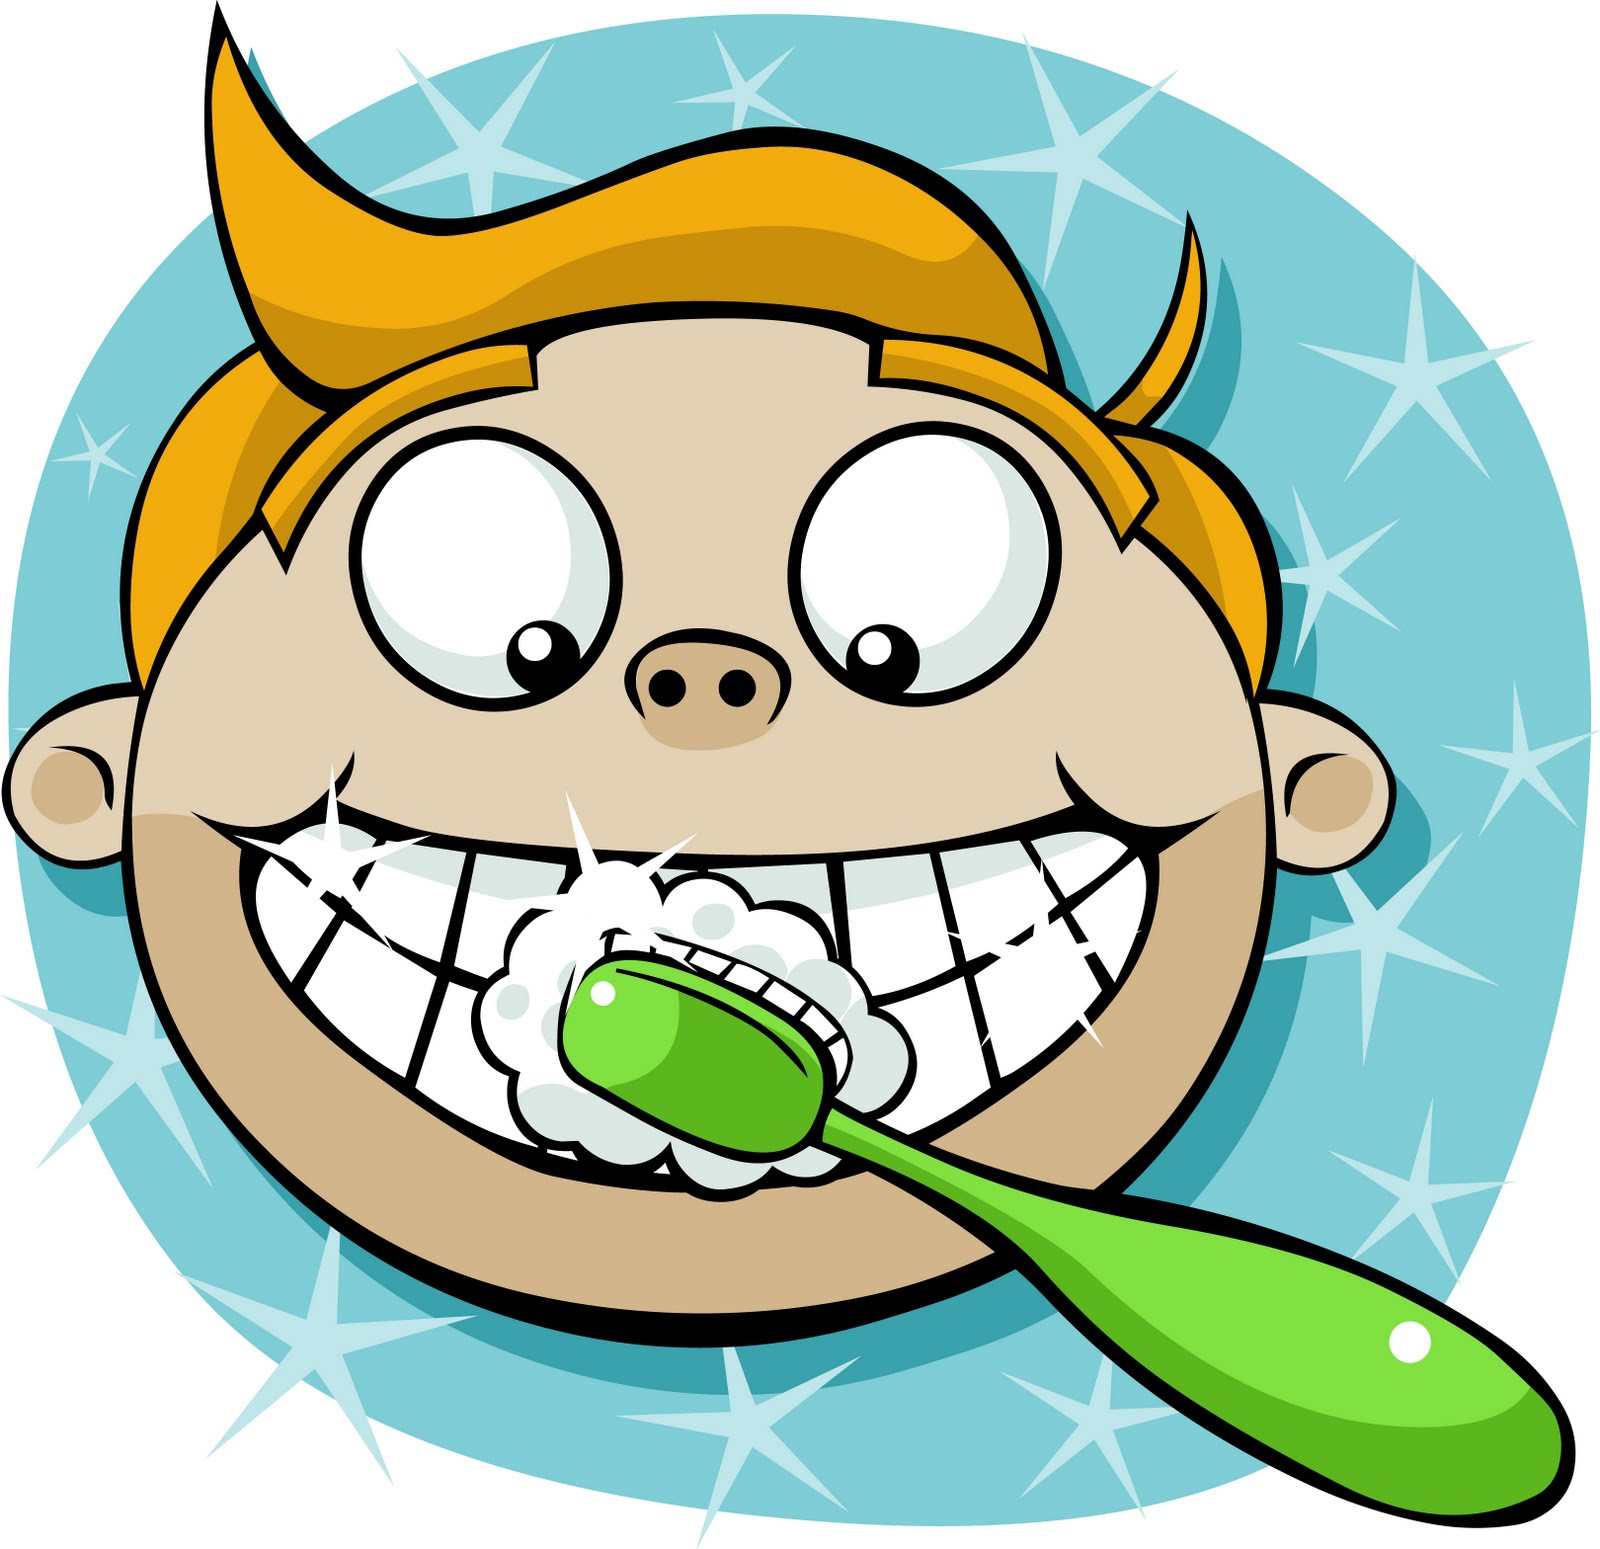 Help Your Mouth The Best Brushing Tip Ev-Help Your Mouth The Best Brushing Tip Ever-2